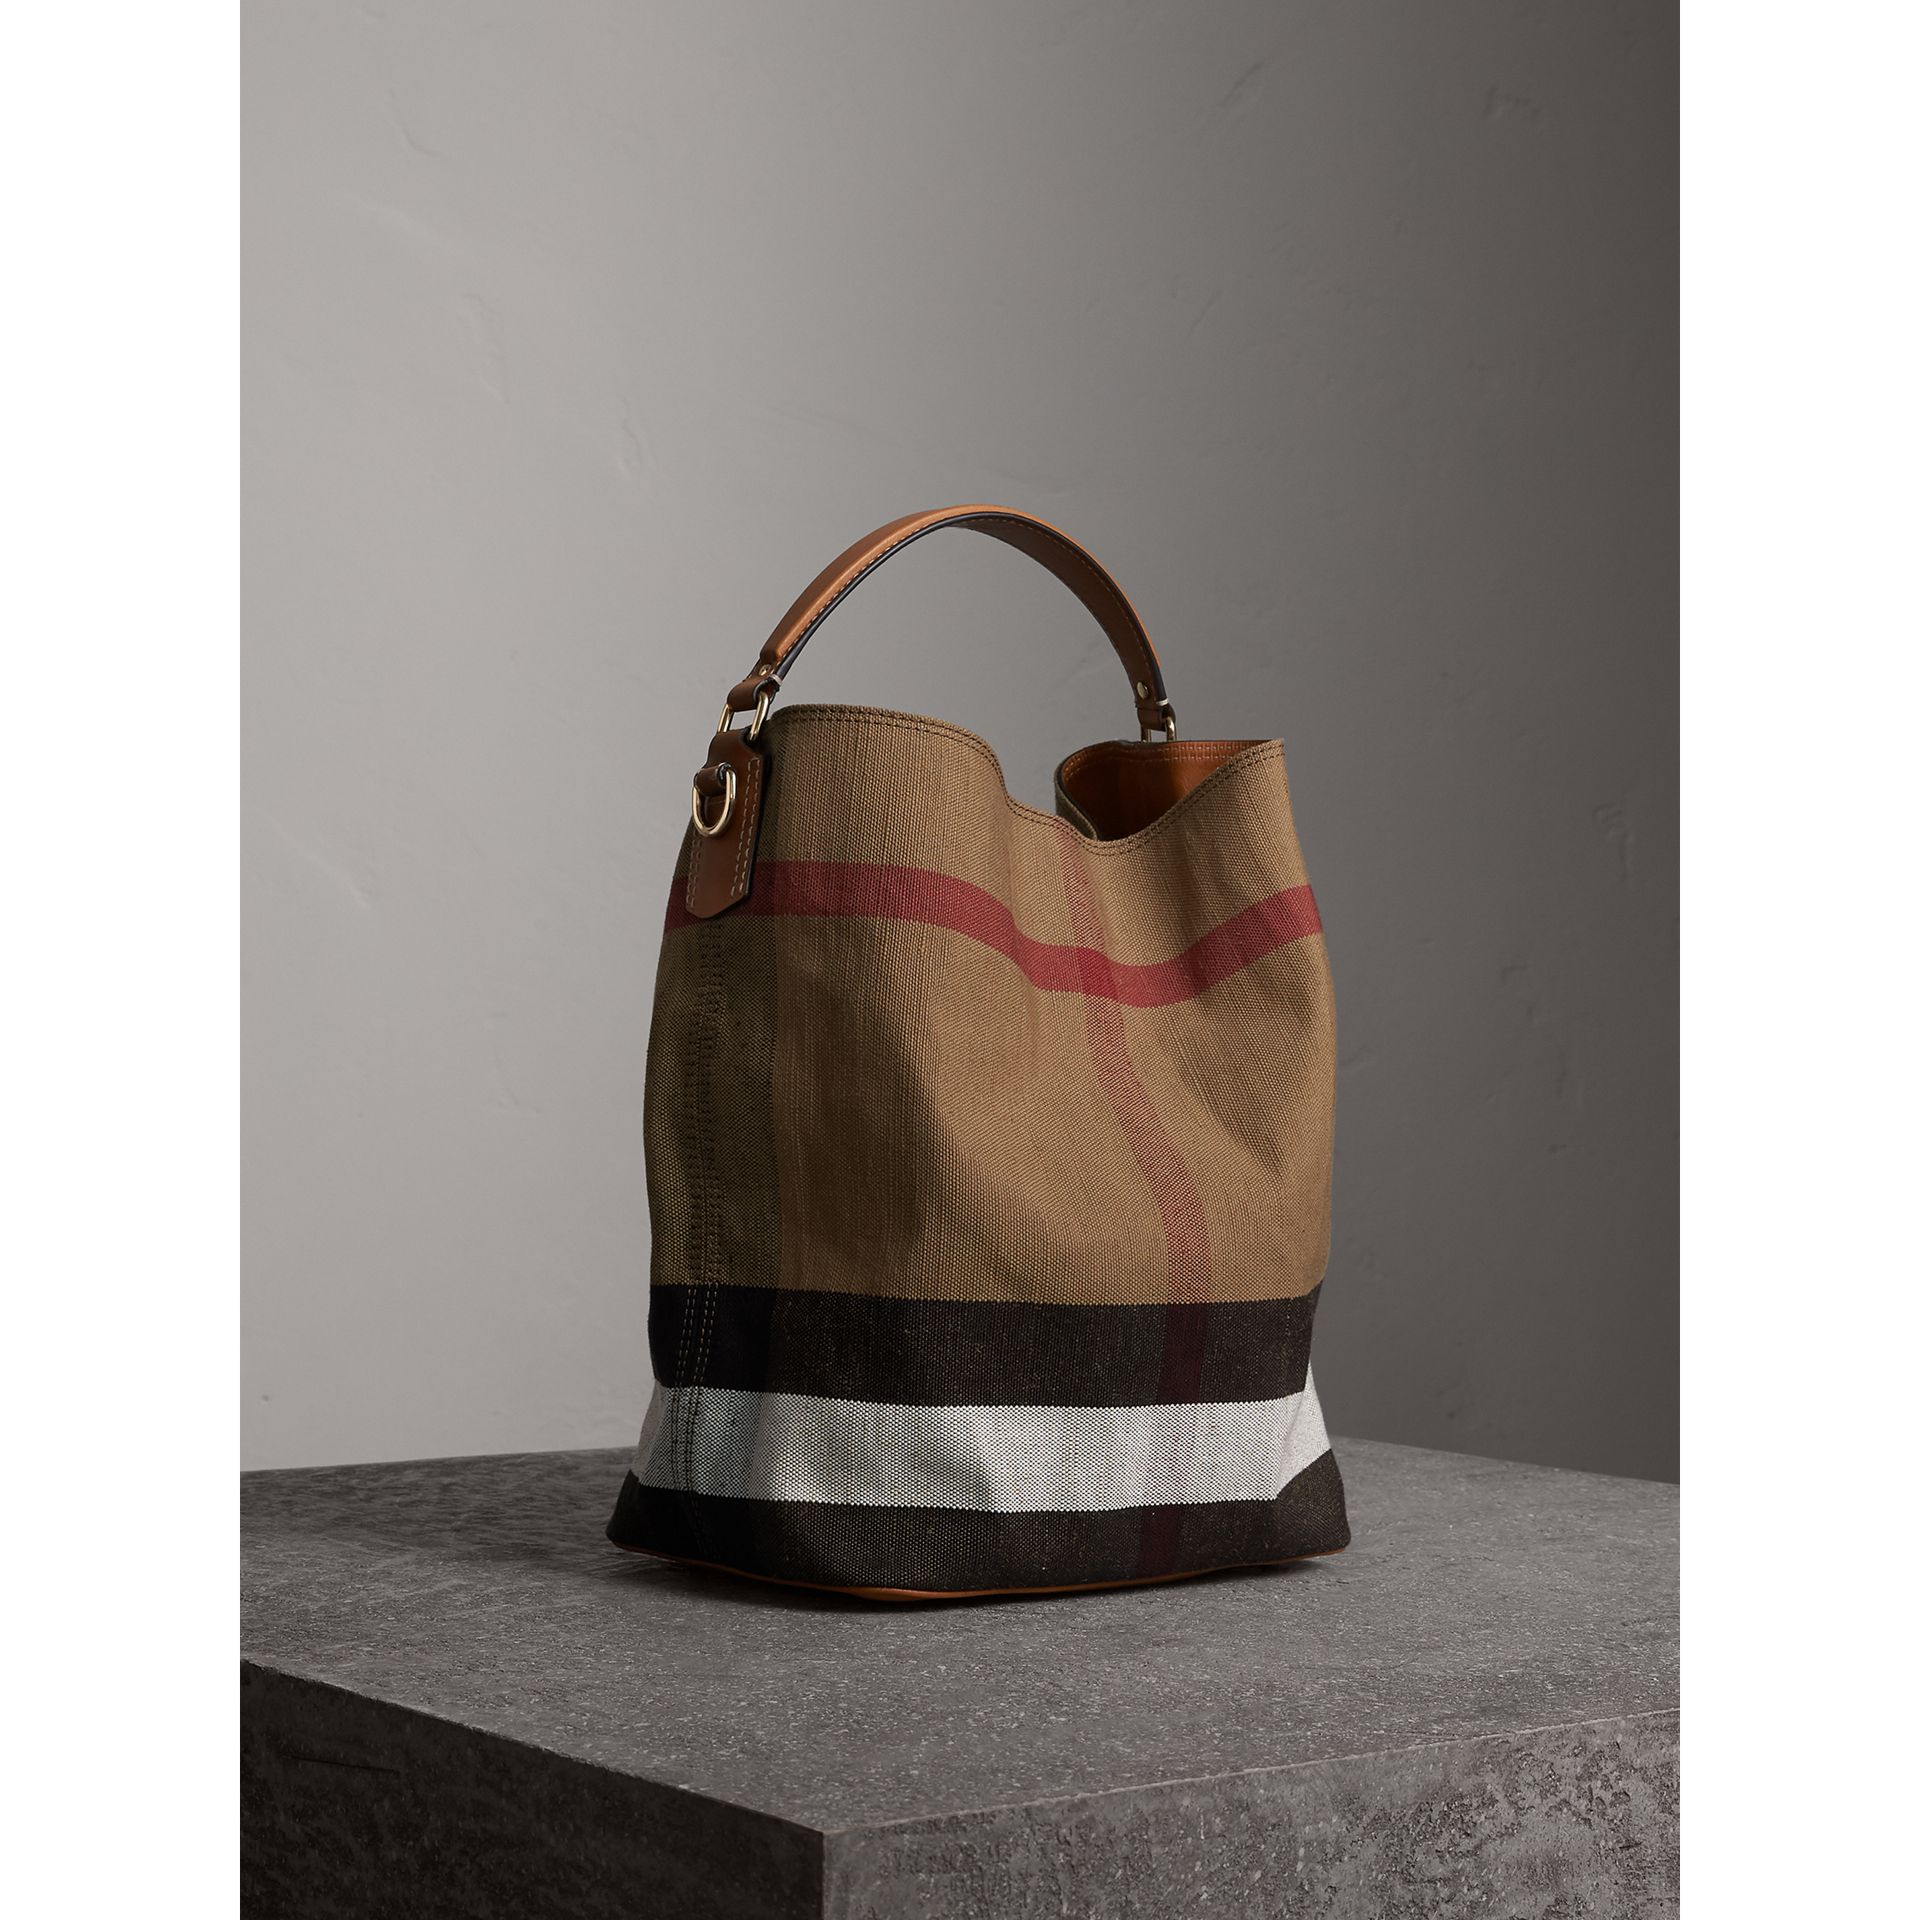 Mittelgroße Hobo-Tasche in Canvas Check (Sattelbraun) - Damen | Burberry - Galerie-Bild 8